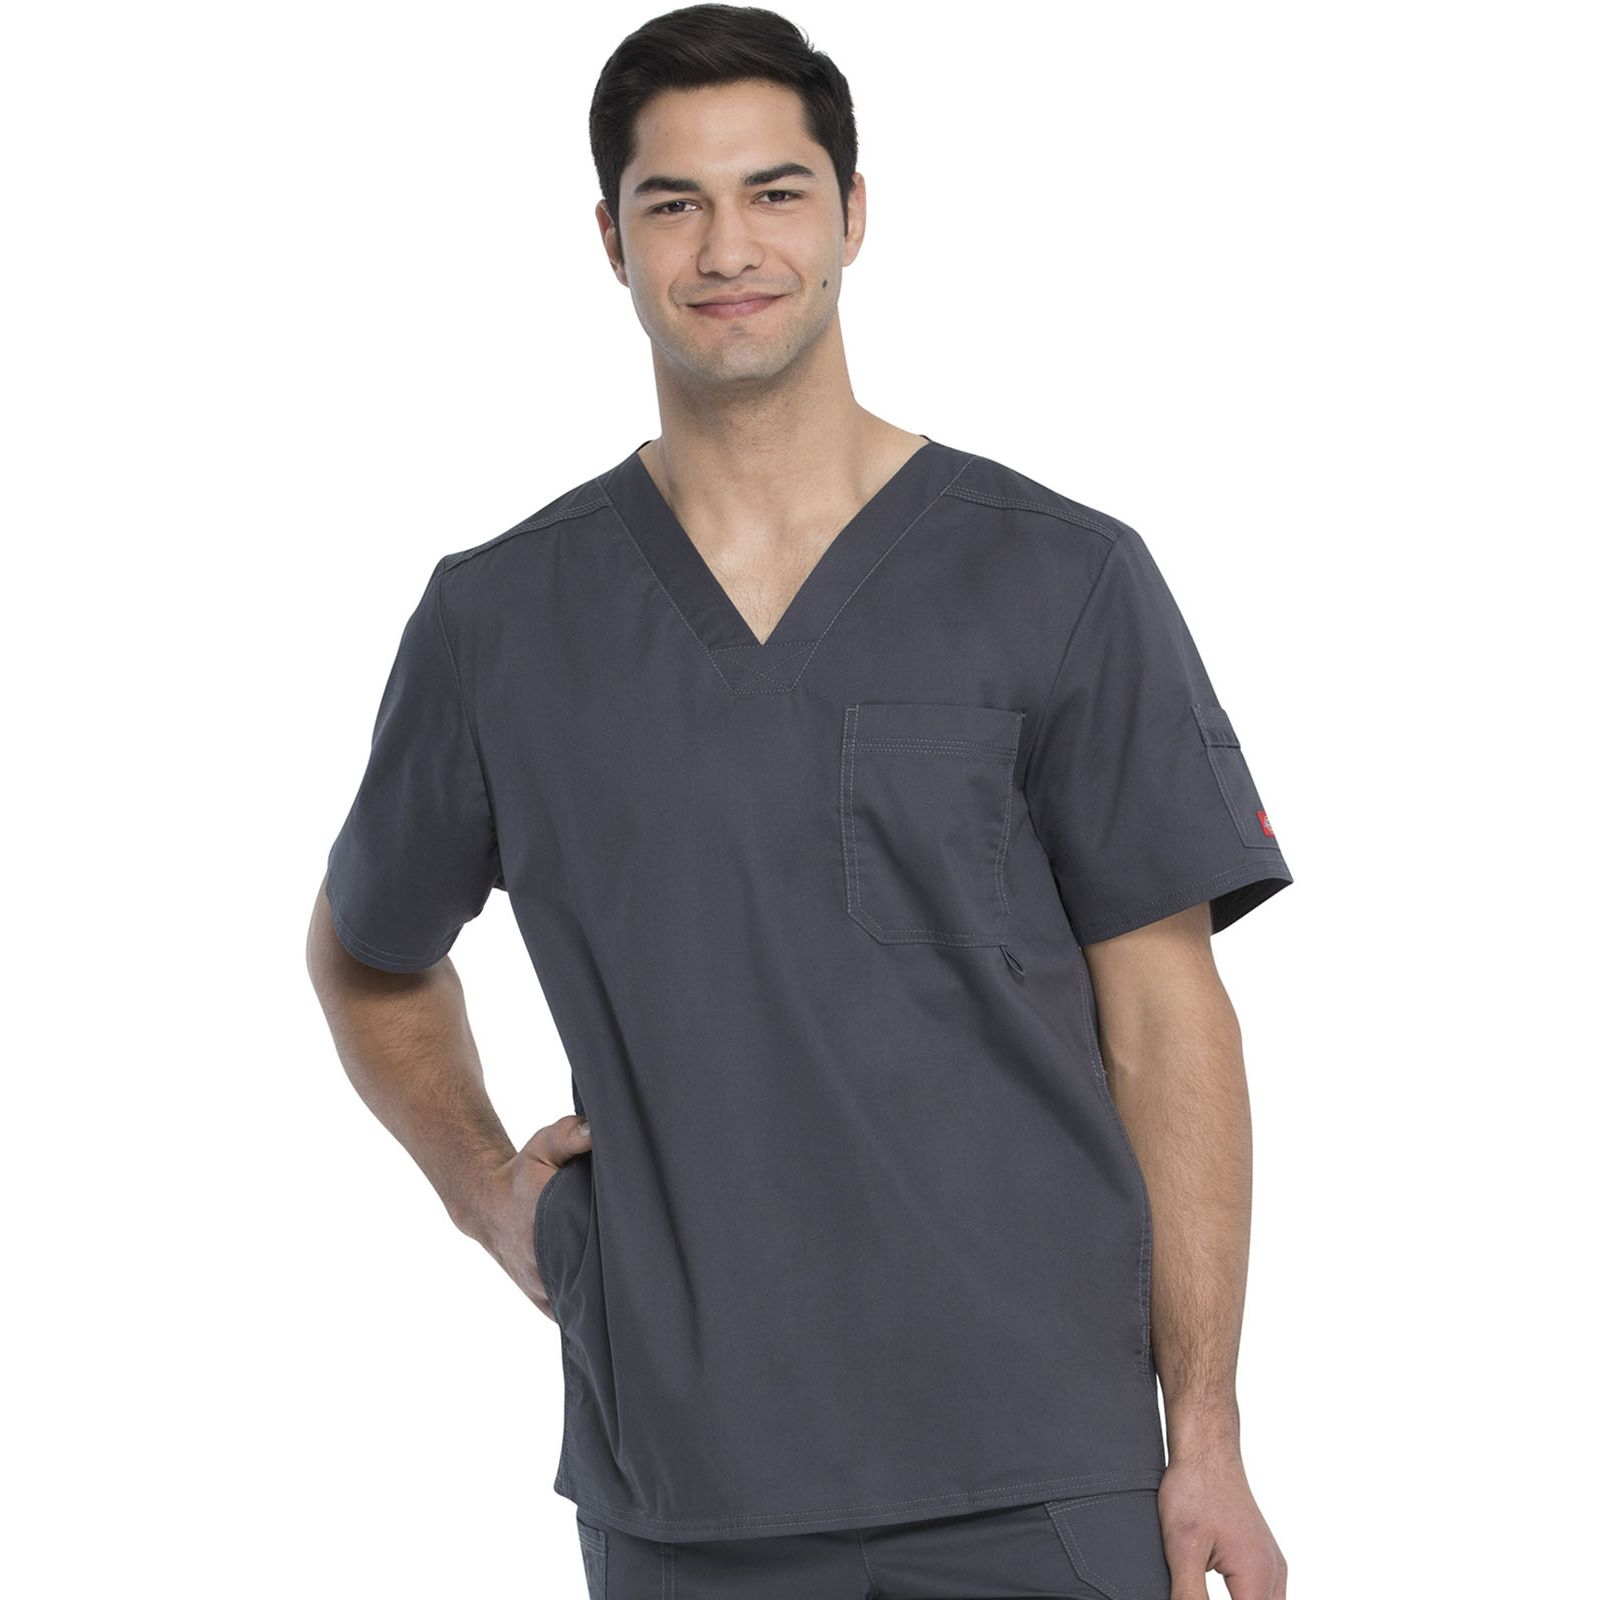 """Blouse médicale Homme Dickies, Collection """"Genflex"""" (81722) gris anthracite face"""